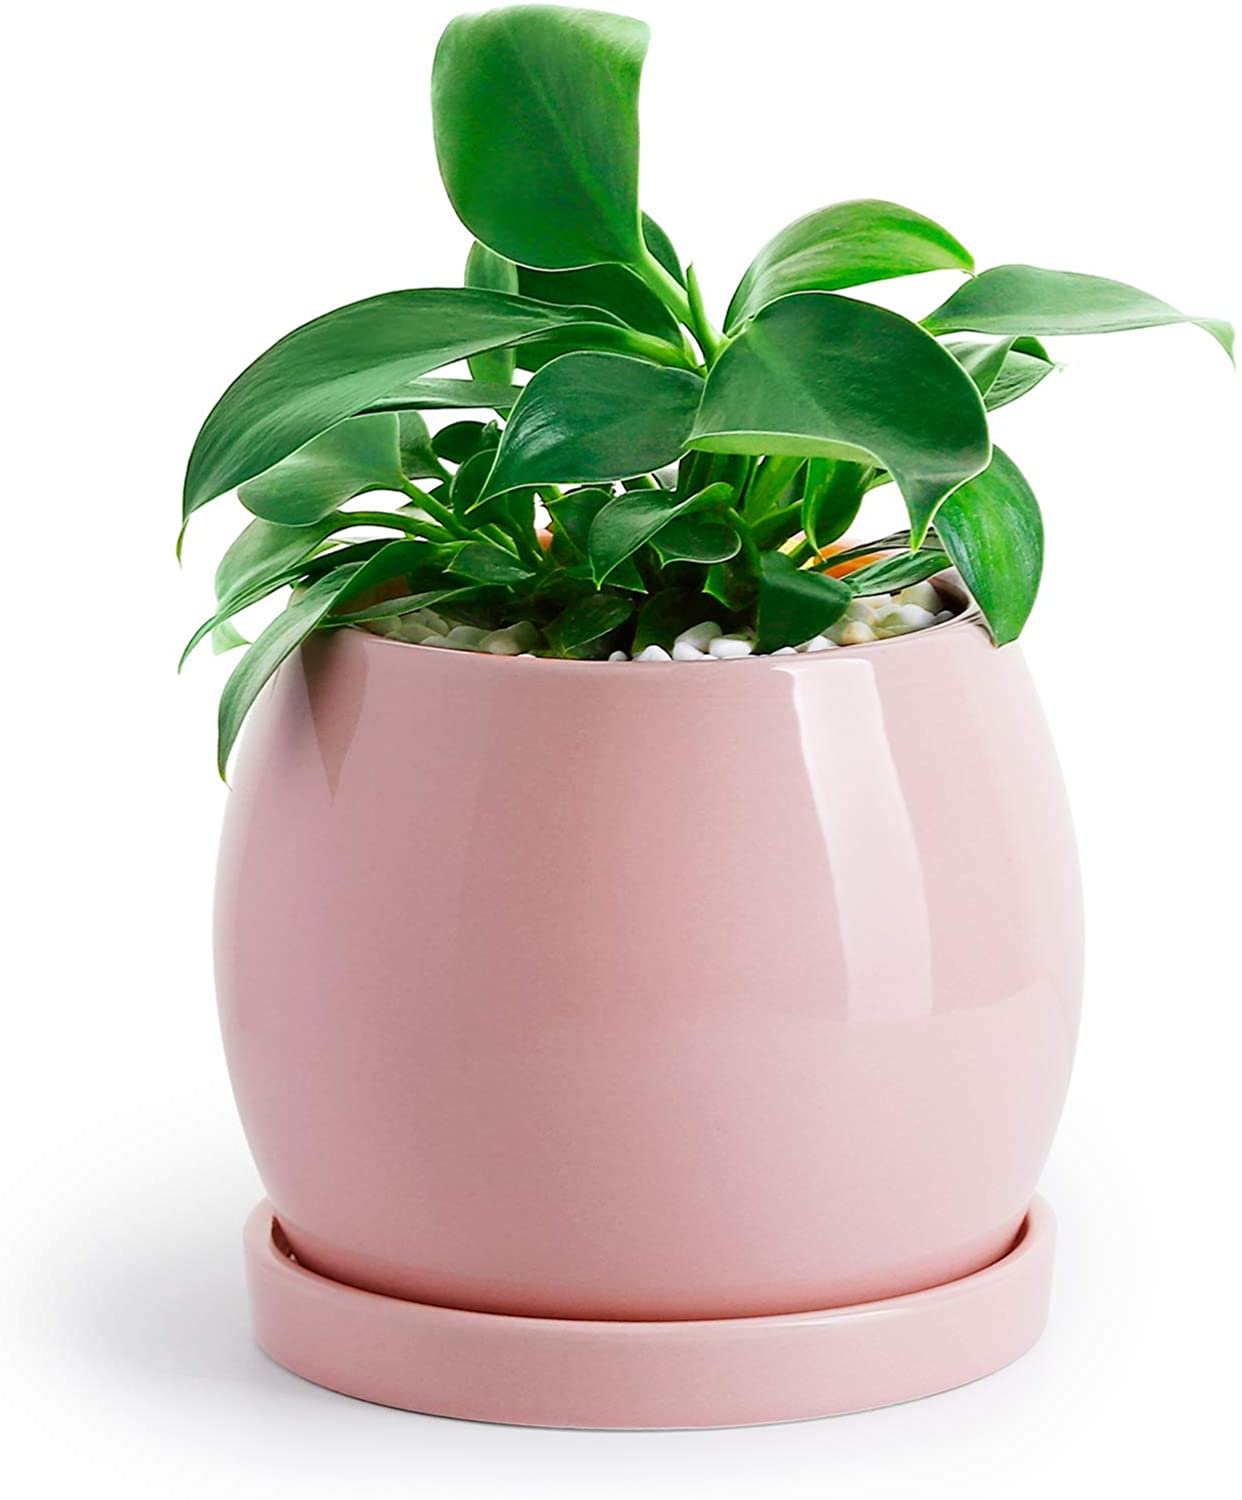 """POTEY Ceramic Planter Flower Plant Pot - 5.1"""" with Drain Hole Saucer-Enough Space - Modern Decorative for Indoor Planters-Light Pink"""